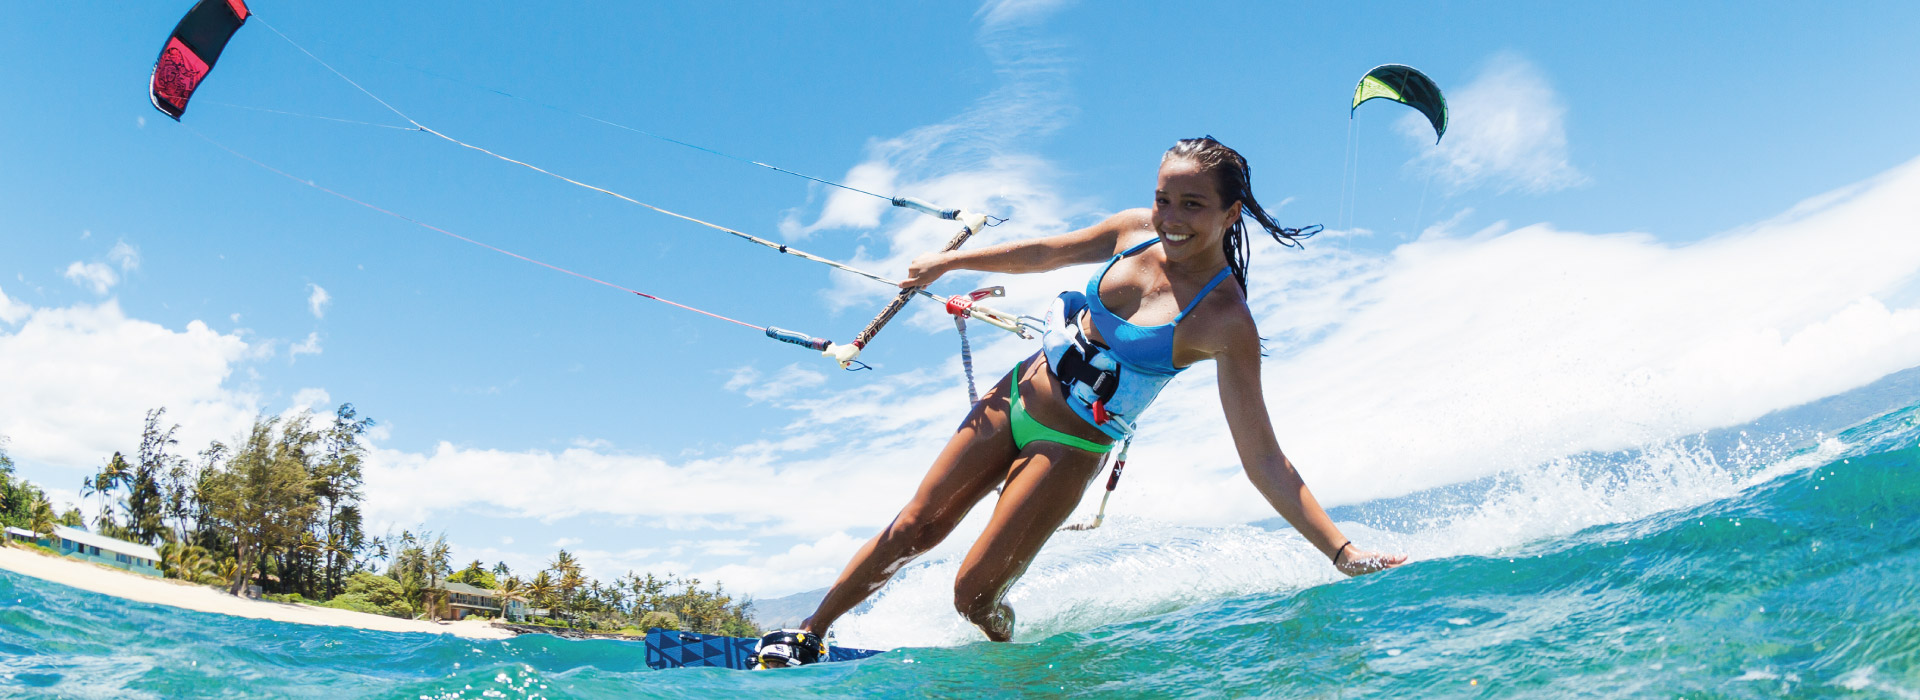 Village n Life - Kite Quarters Langebaan